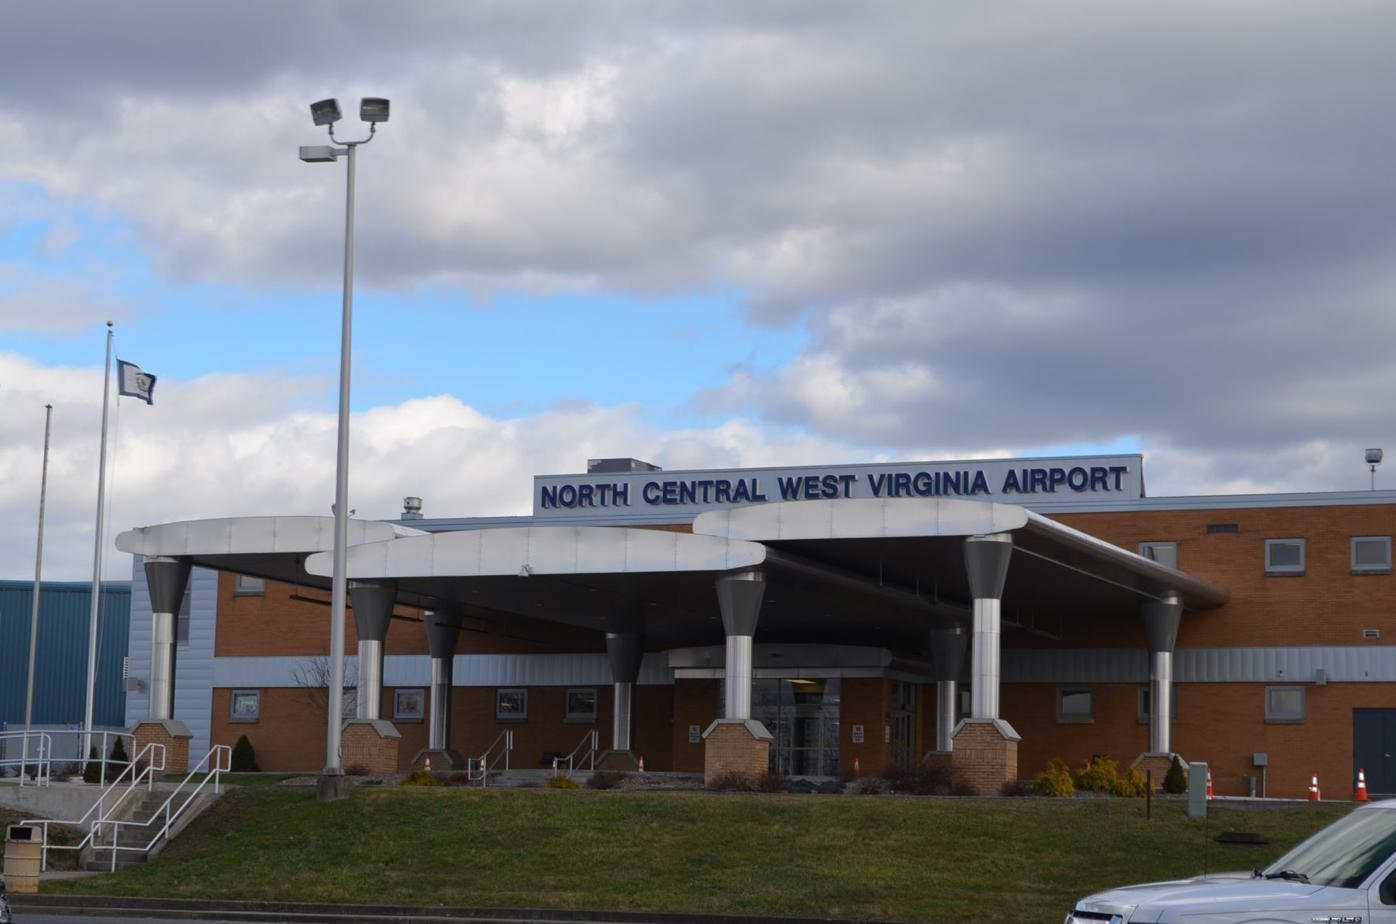 North Central West Virginia Airport exterior